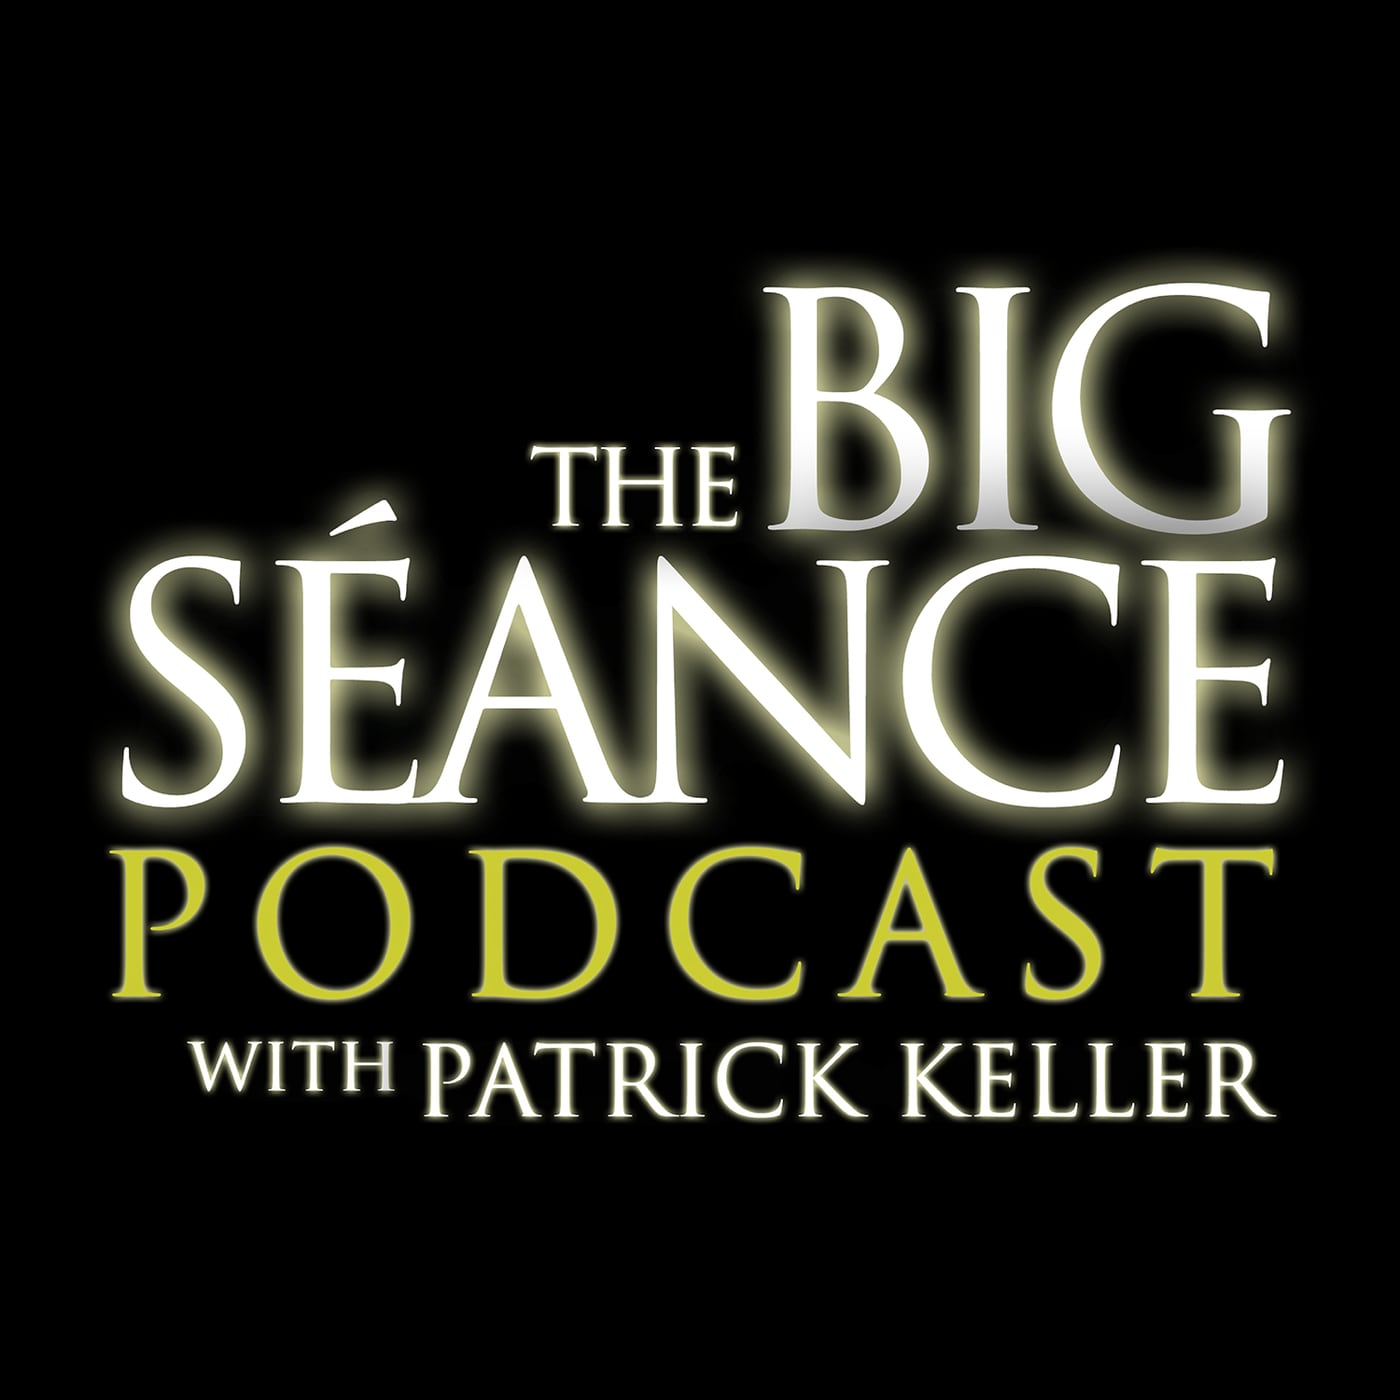 Big Seance Podcast | Podbay